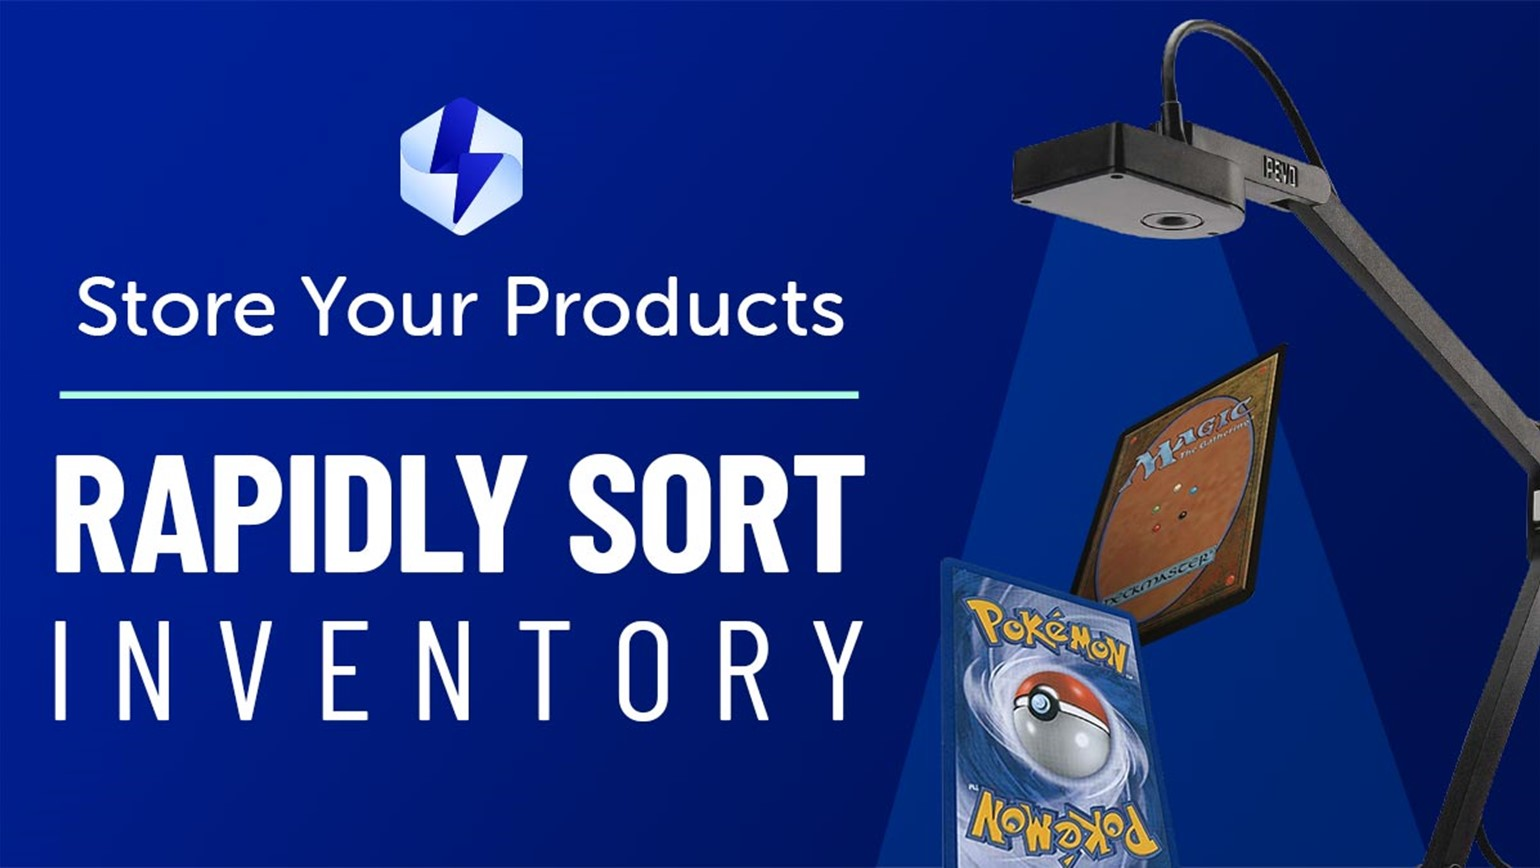 Rapidly Sort Your Inventory for Store Your Products